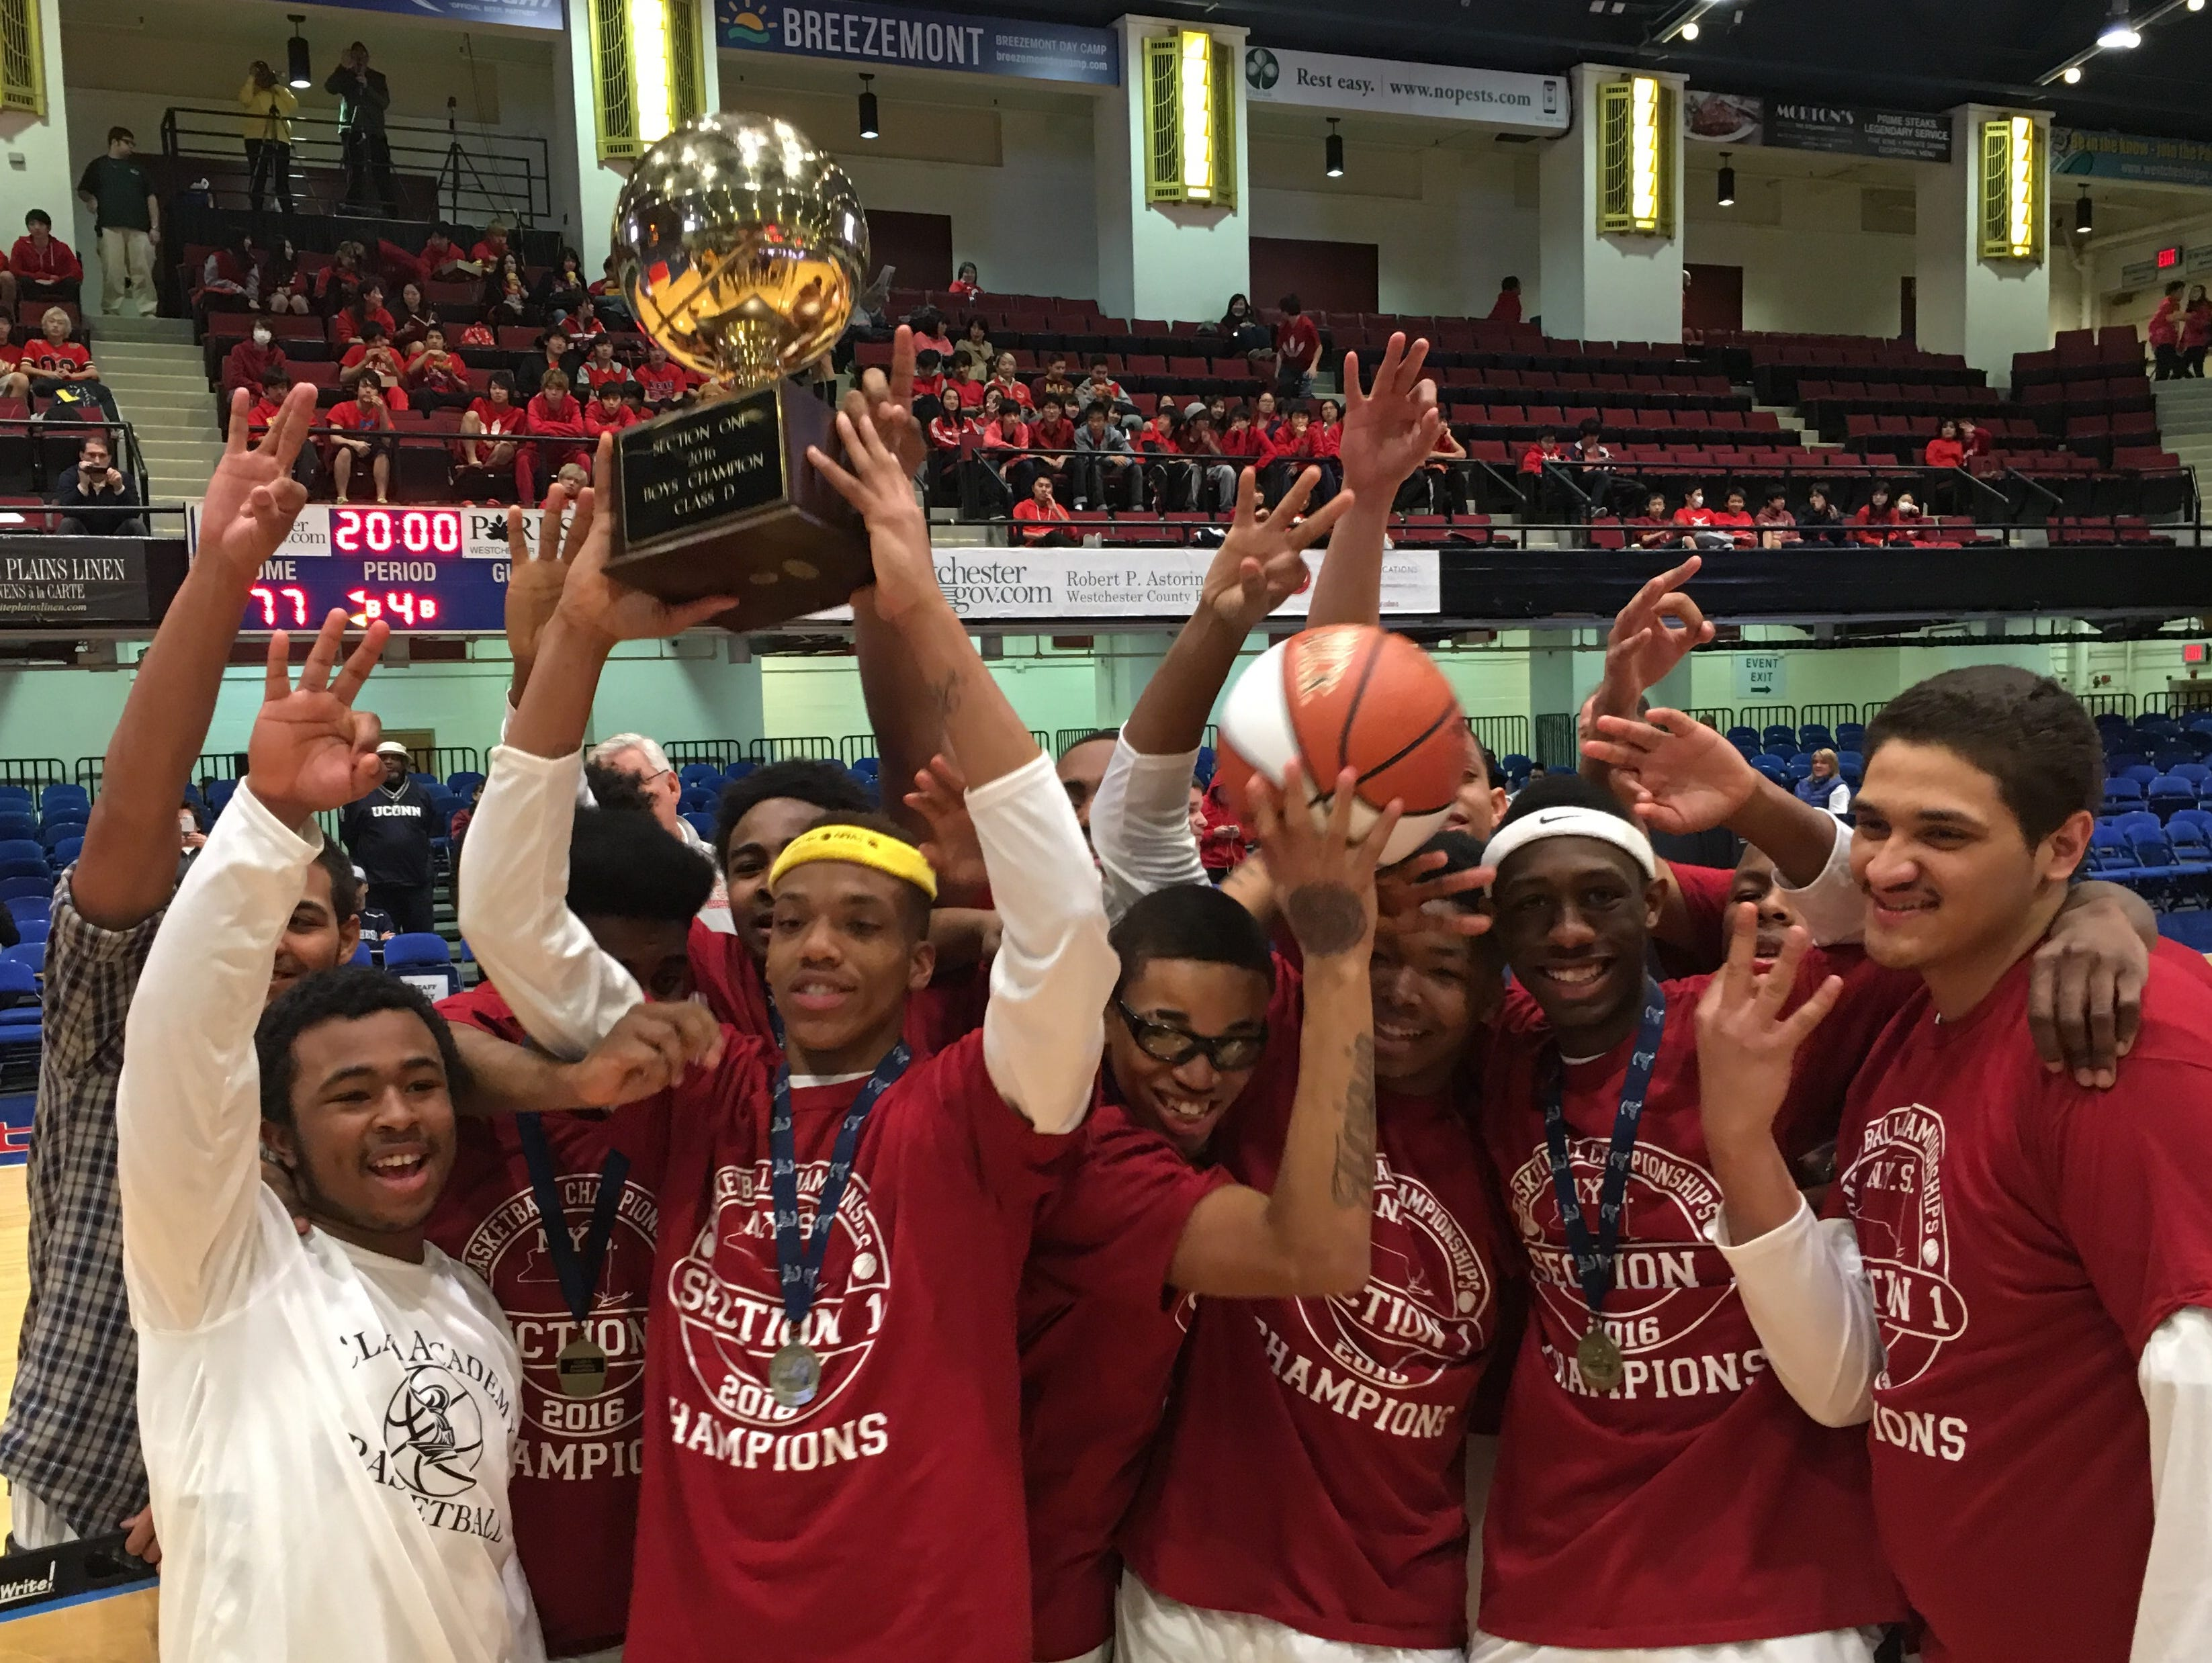 Clark Academy players pose with the gold ball on Monday, Feb. 29, 2016. Clark beat MLK 77-57 to win its third straight Section 1 Class D championship at the Westchester County Center.